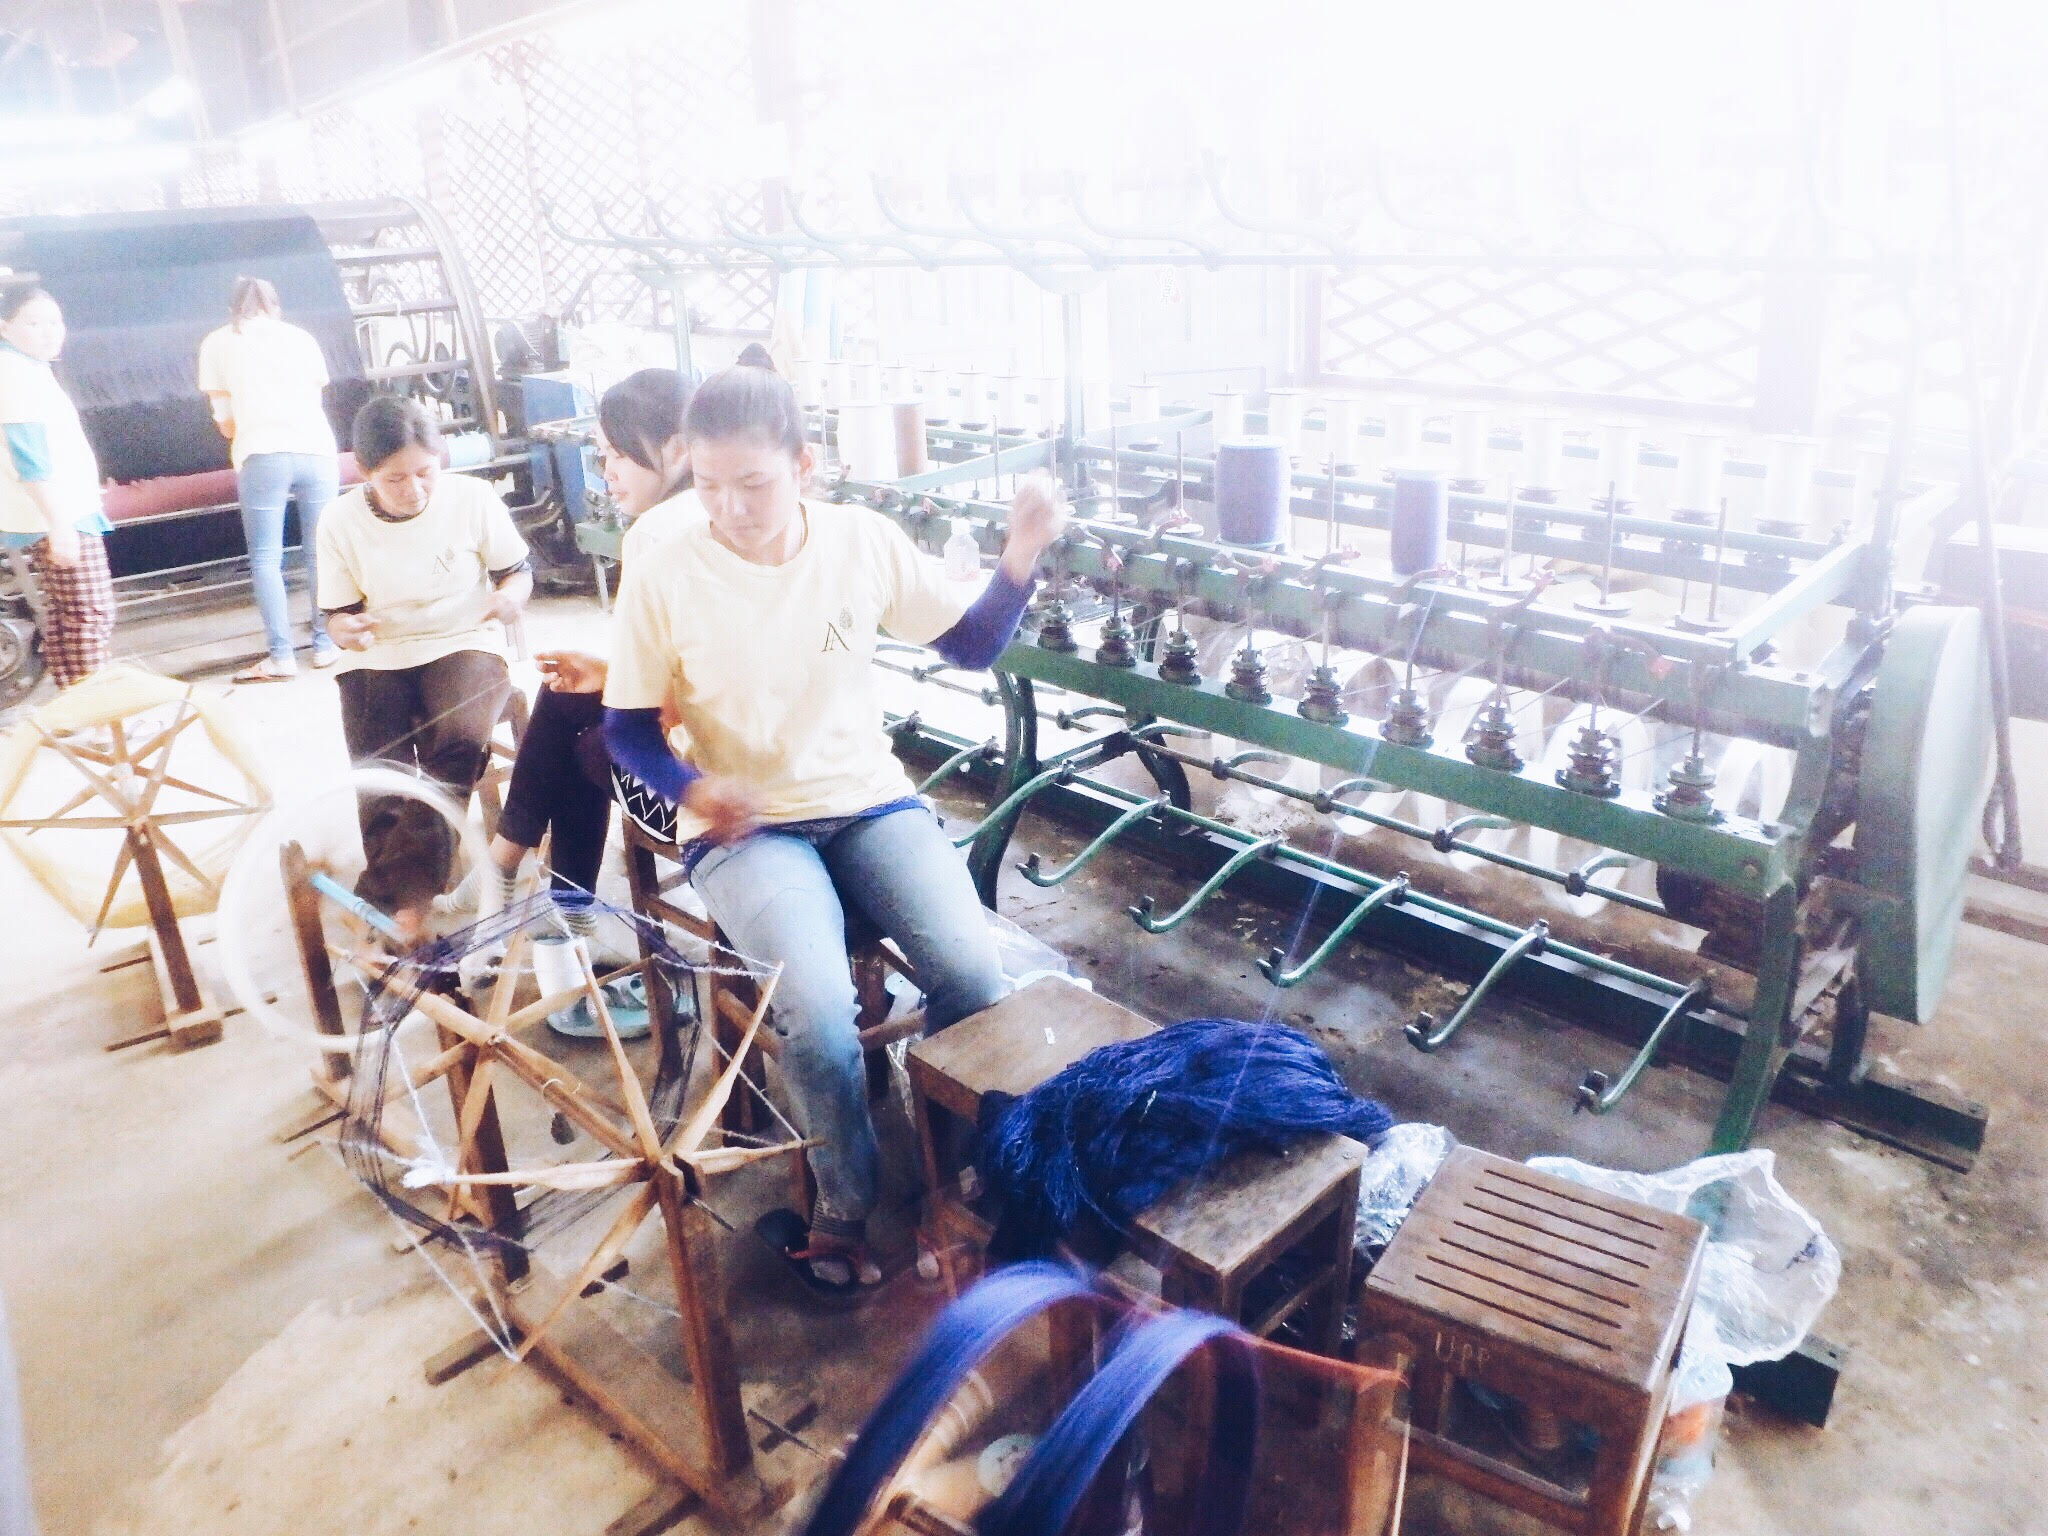 The thread is transferred from the large wooden spinning   wheels to spools.